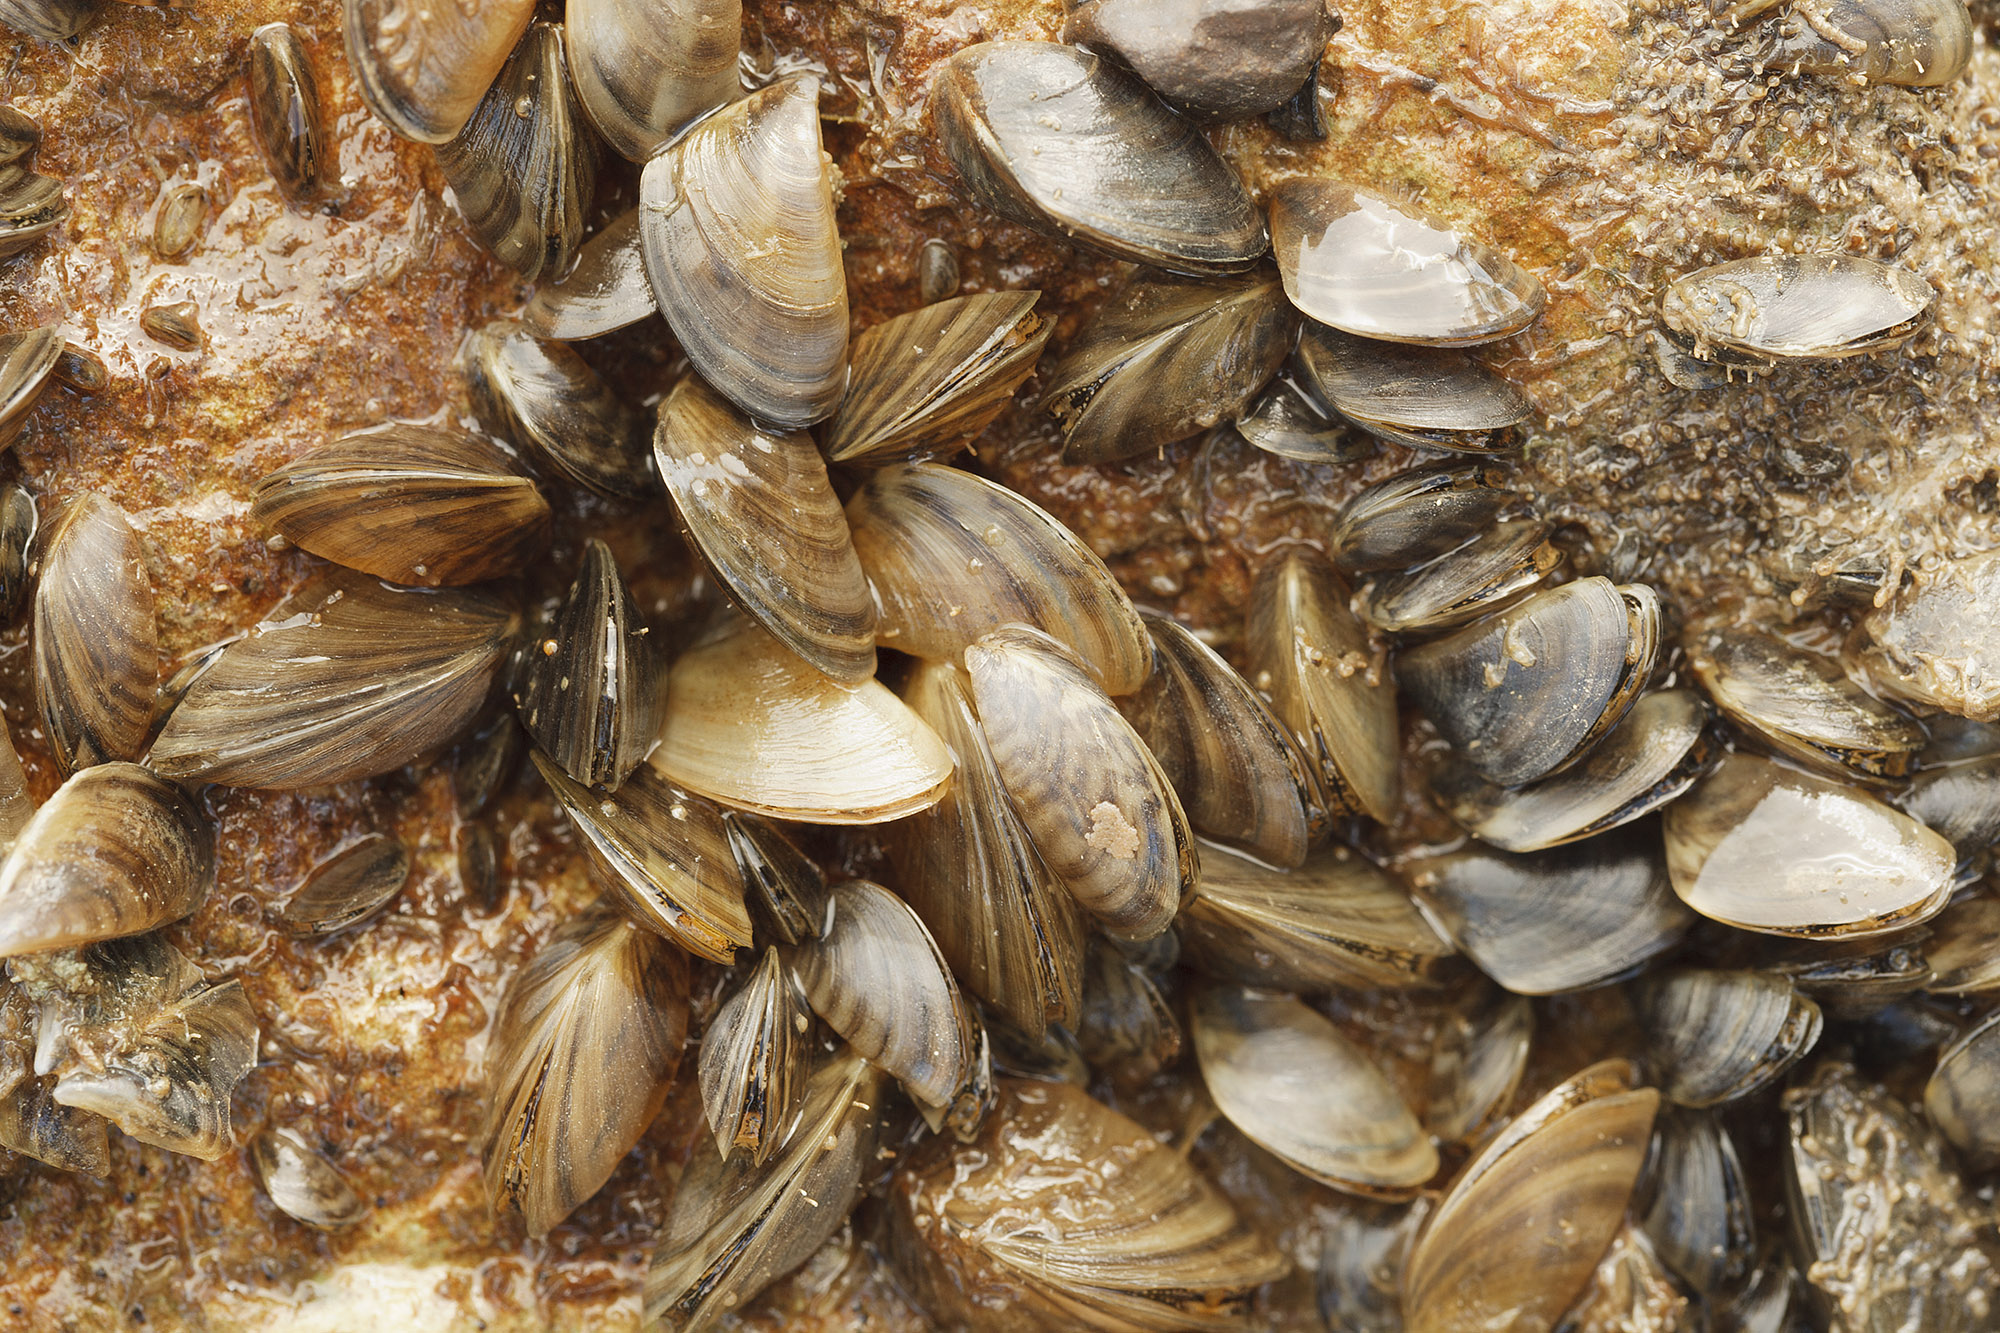 Marble Falls, Granger added to statewide list of lakes infested with Zebra Mussels